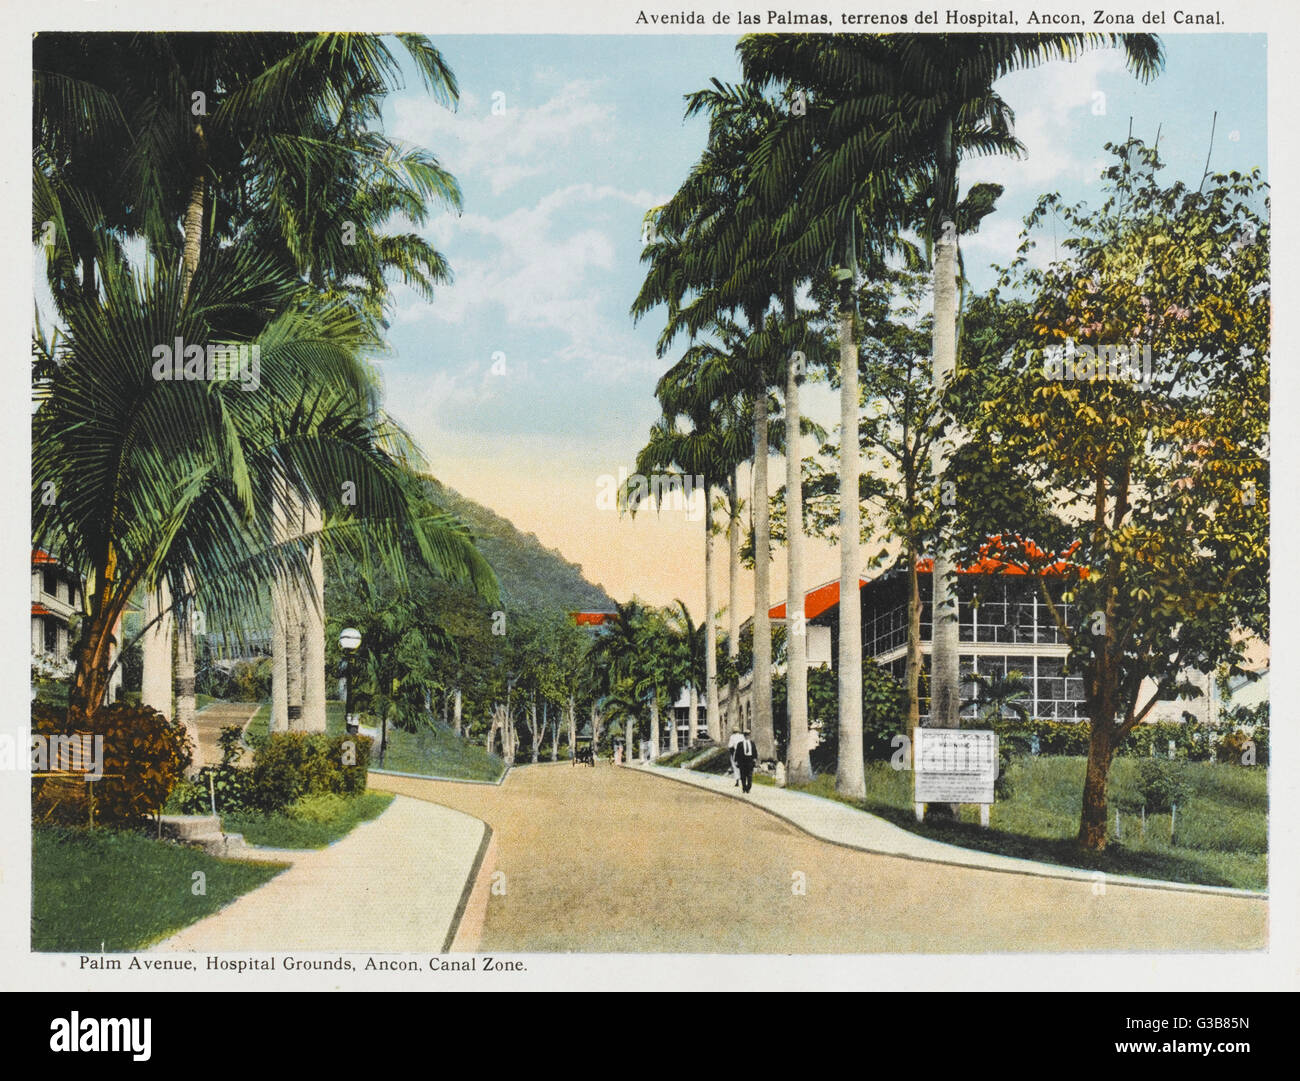 Ancon, Canal Zone:  Palm Avenue, Hospital Grounds        Date: circa 1915 - Stock Image